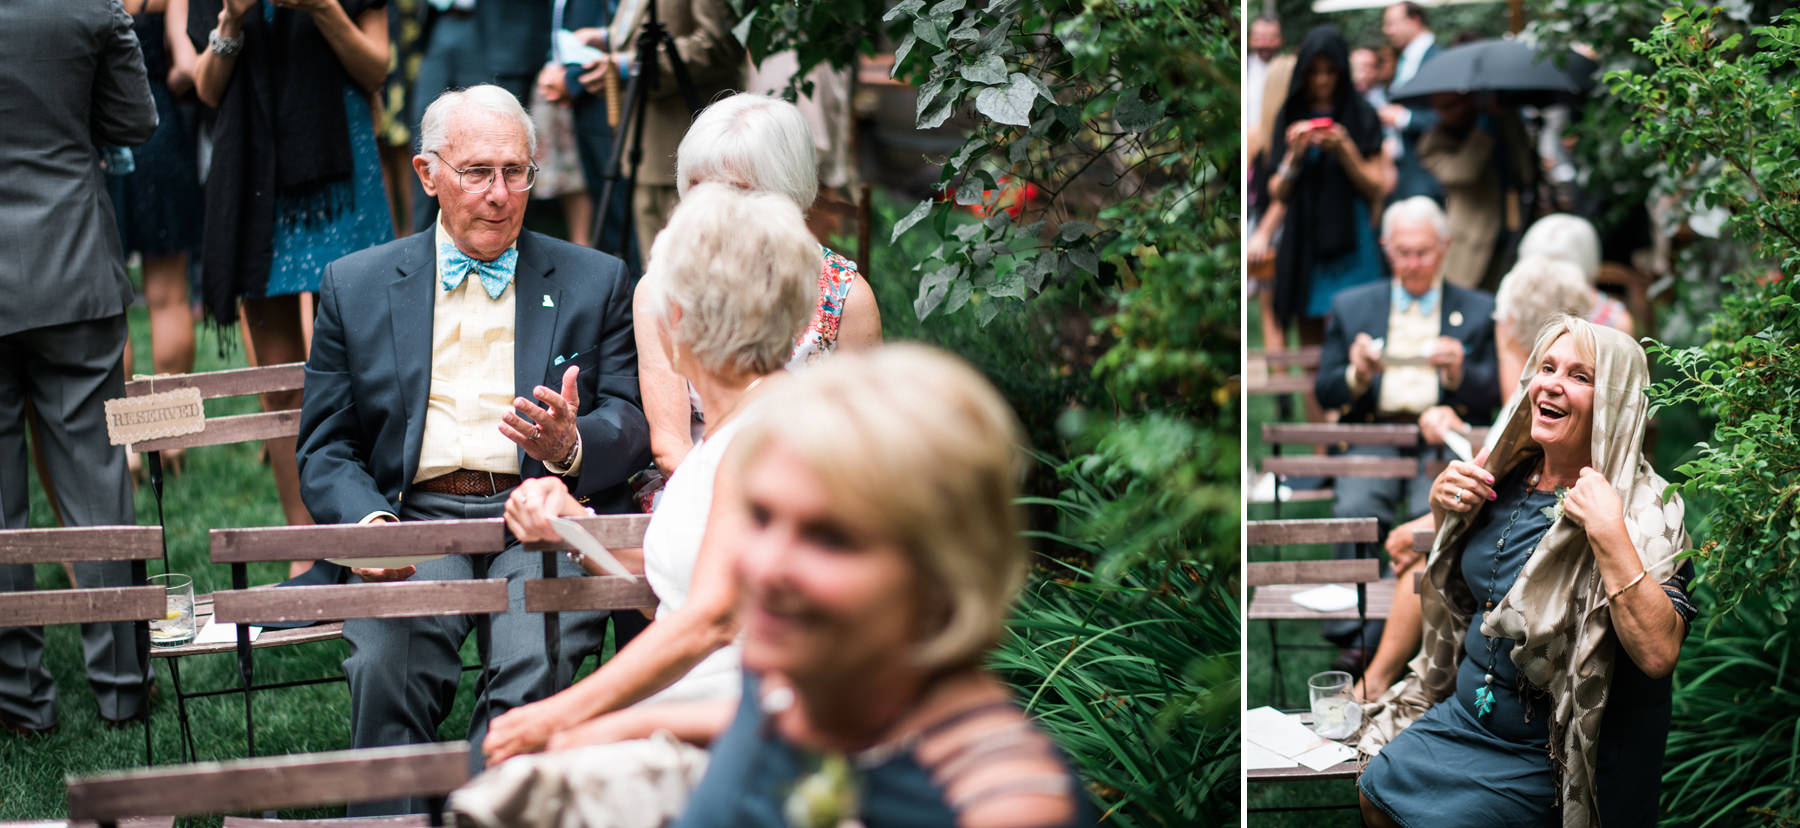 200-outdoor-wedding-at-the-corson-building-in-georgetown-seattle.jpg